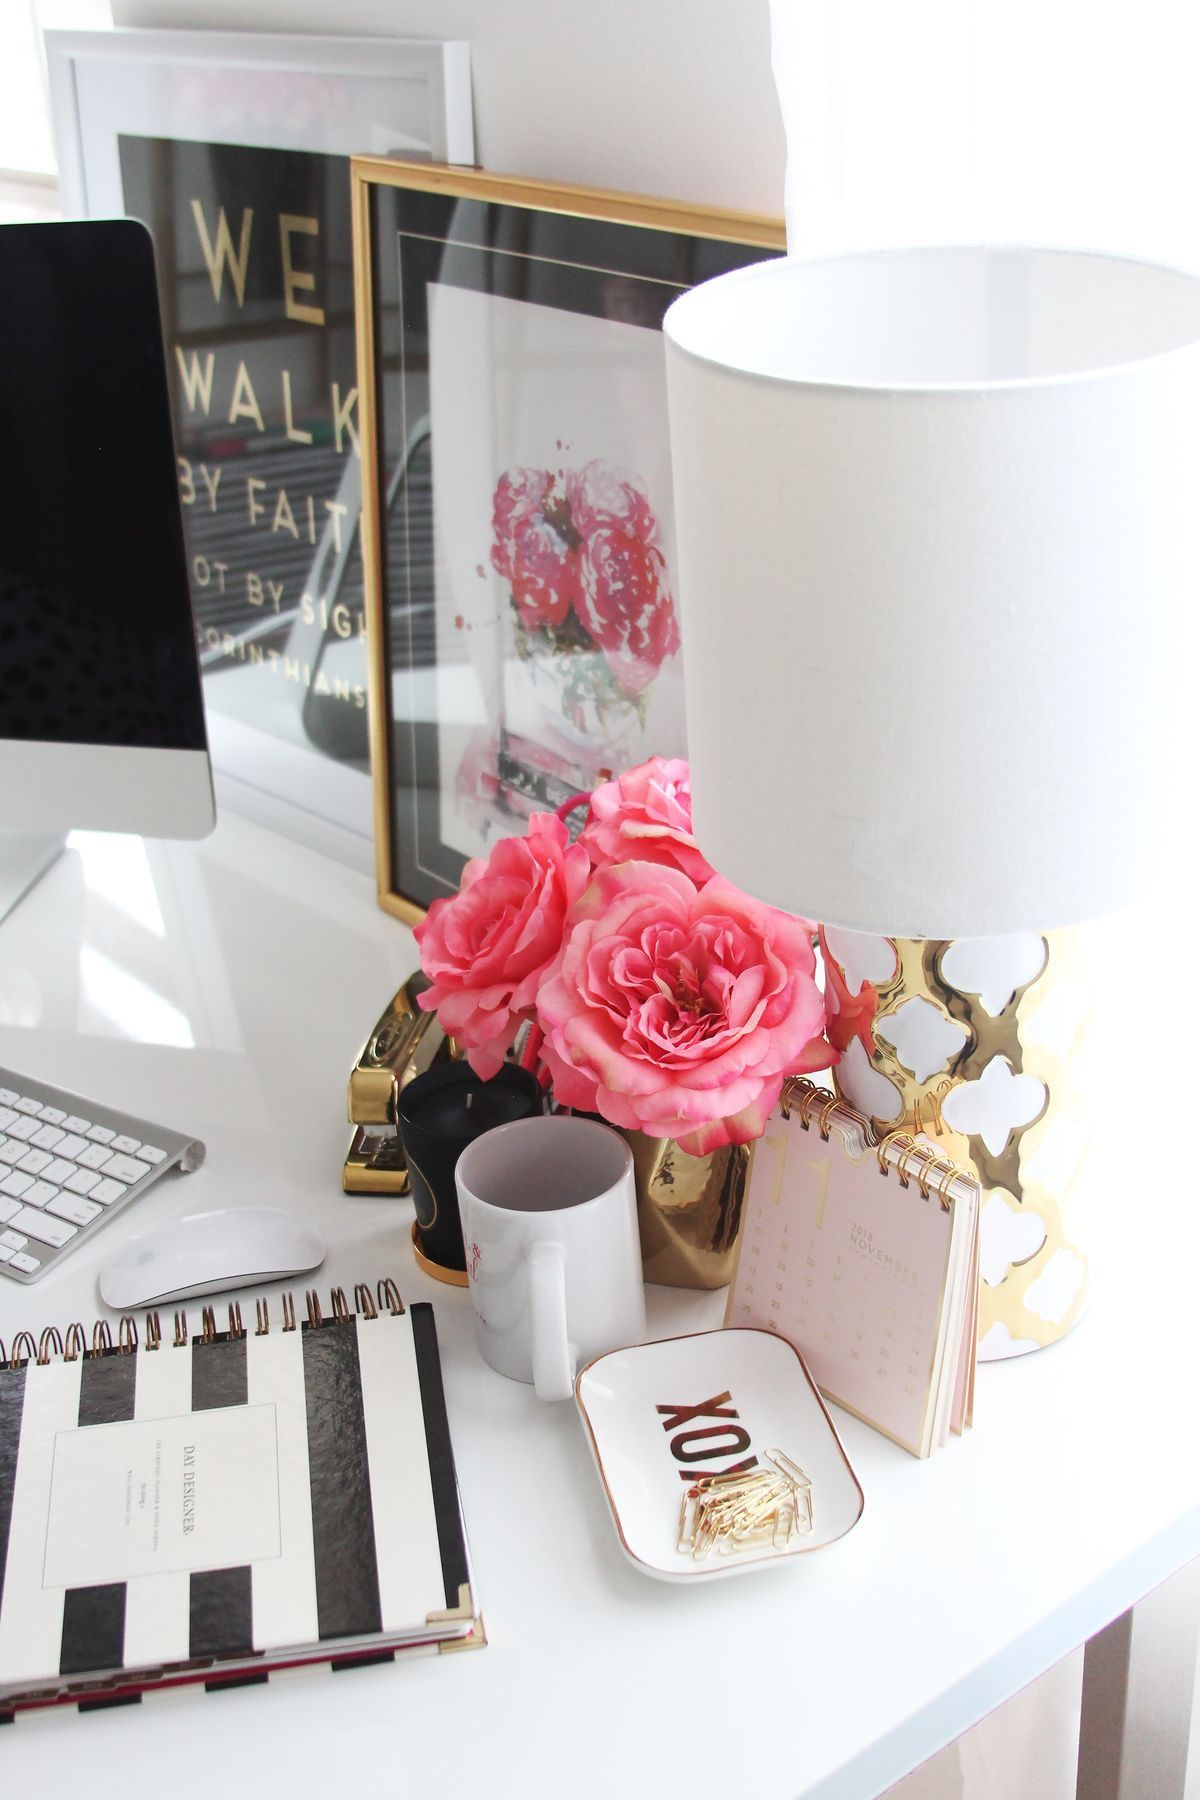 Describe Your Office Space To Us. My Office Is Stylish Minimalism With A  Dash Of Girly Chic Flair. Itu0027s Completely Different From The Rest Of My  Homeu0027s ...